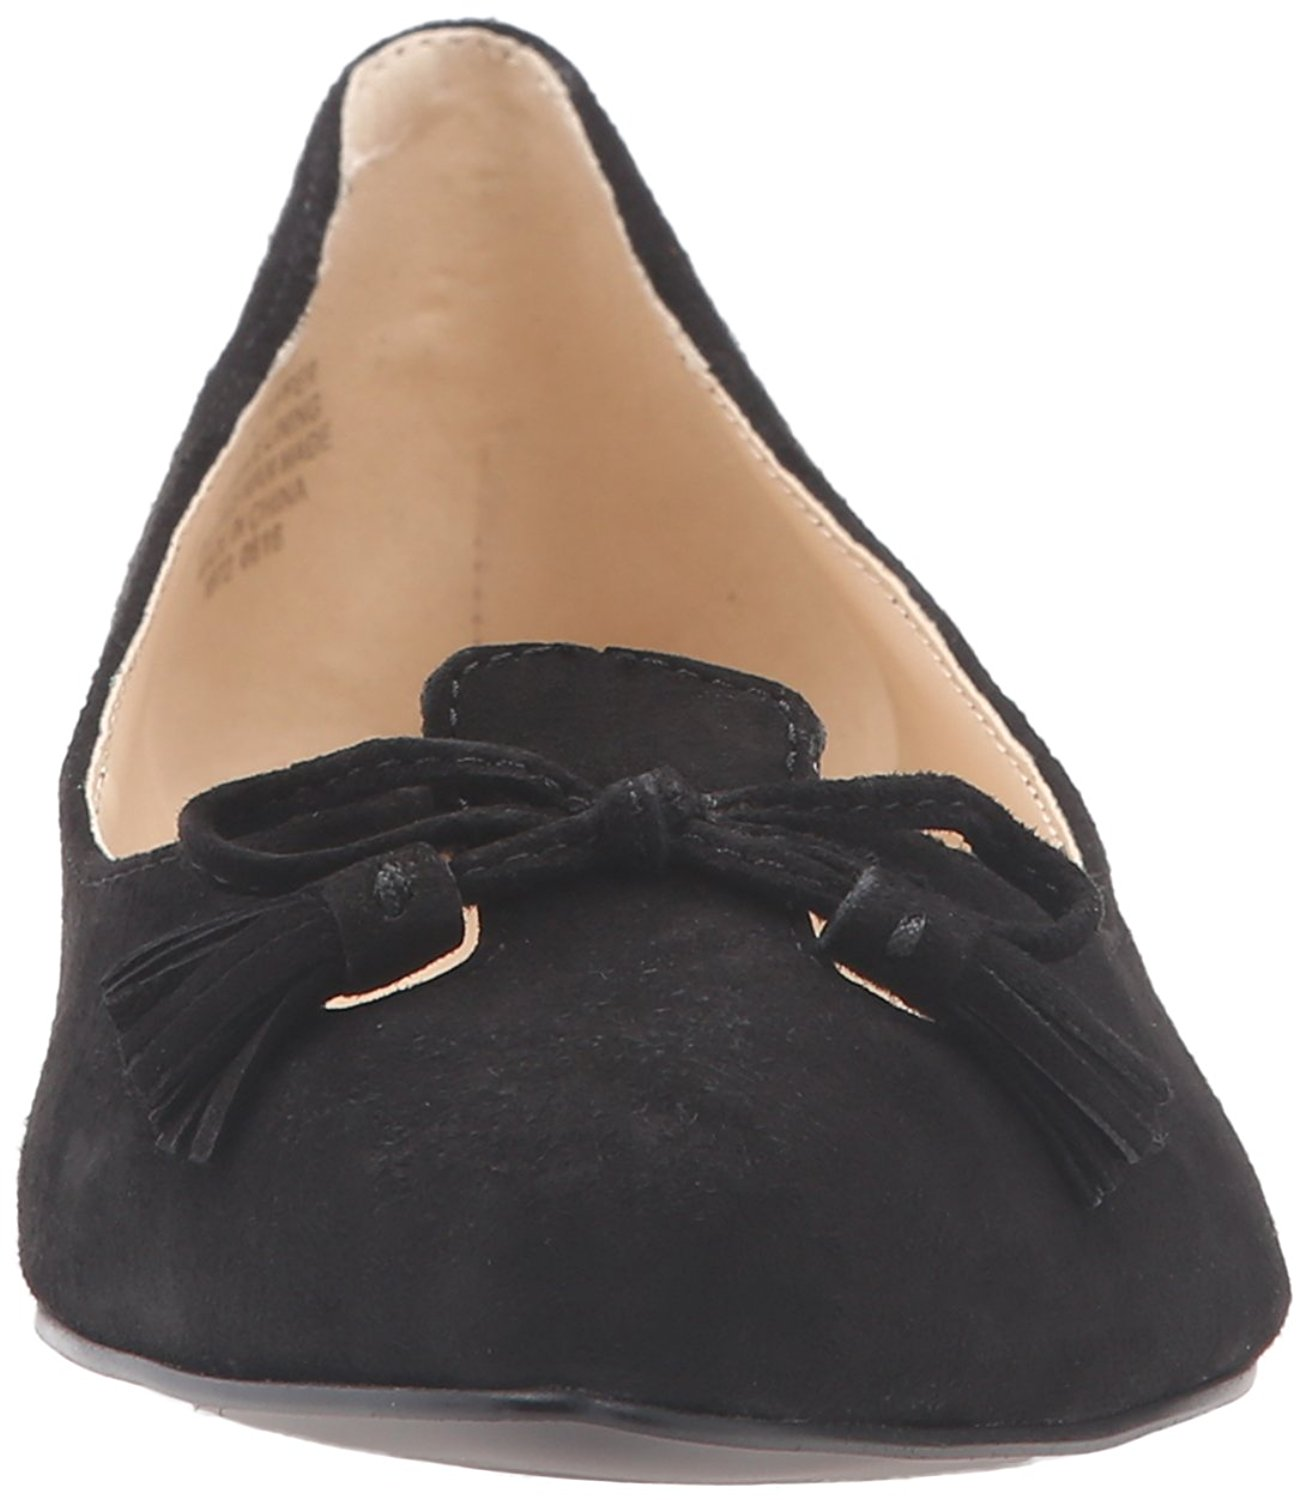 Do Men Like Pointed Toe Shoes On Women